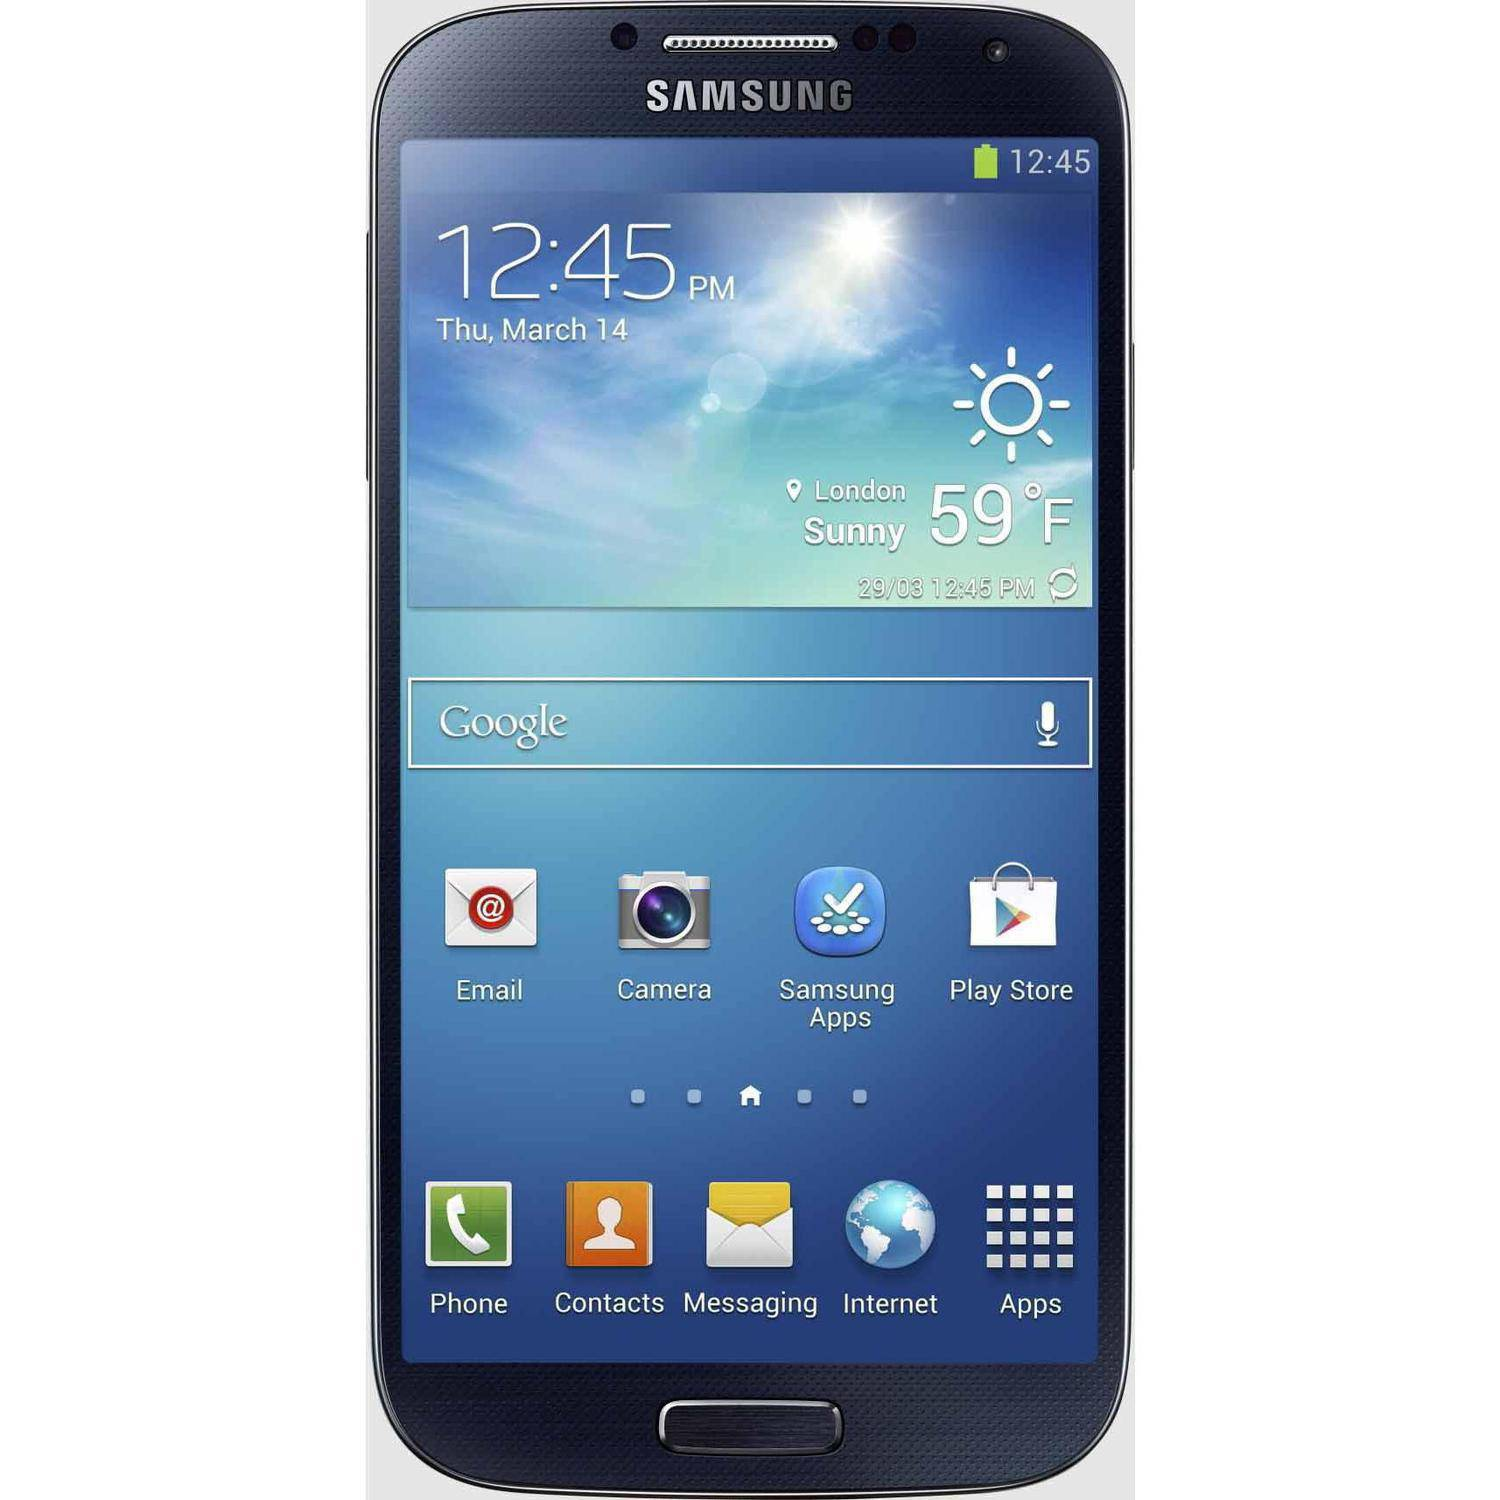 AT&T Samsung Galaxy S4 6060A GSM Android Smartphone Locked (AT&T), Black